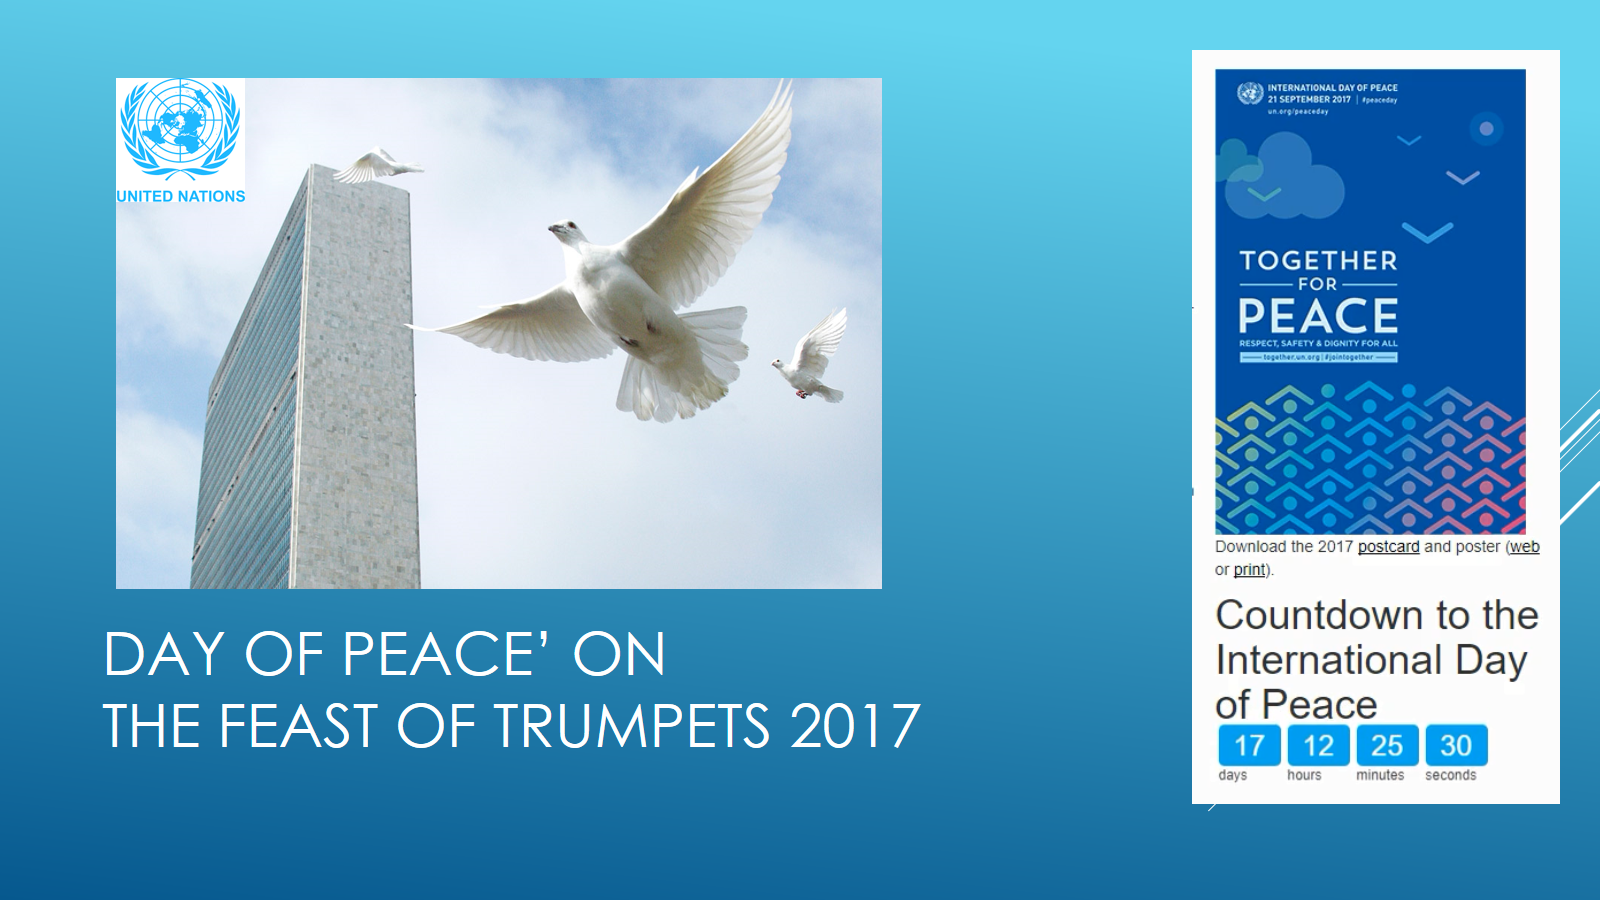 The Feast of Trumpets vs the UN Day of Peace